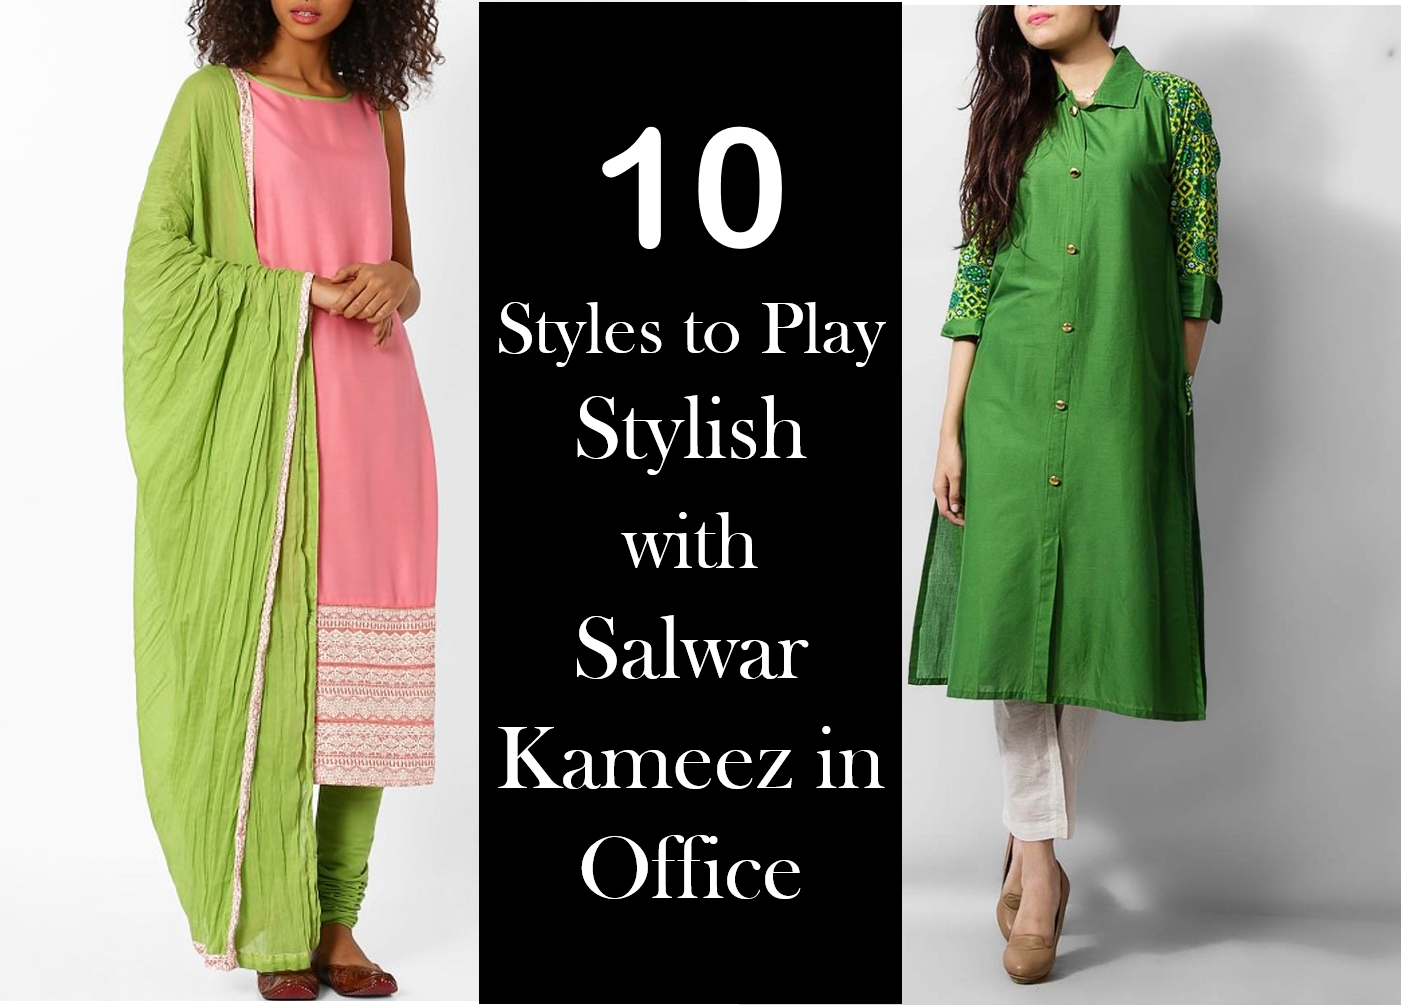 10 Styles to Play Stylish with Salwar Kameez in Office